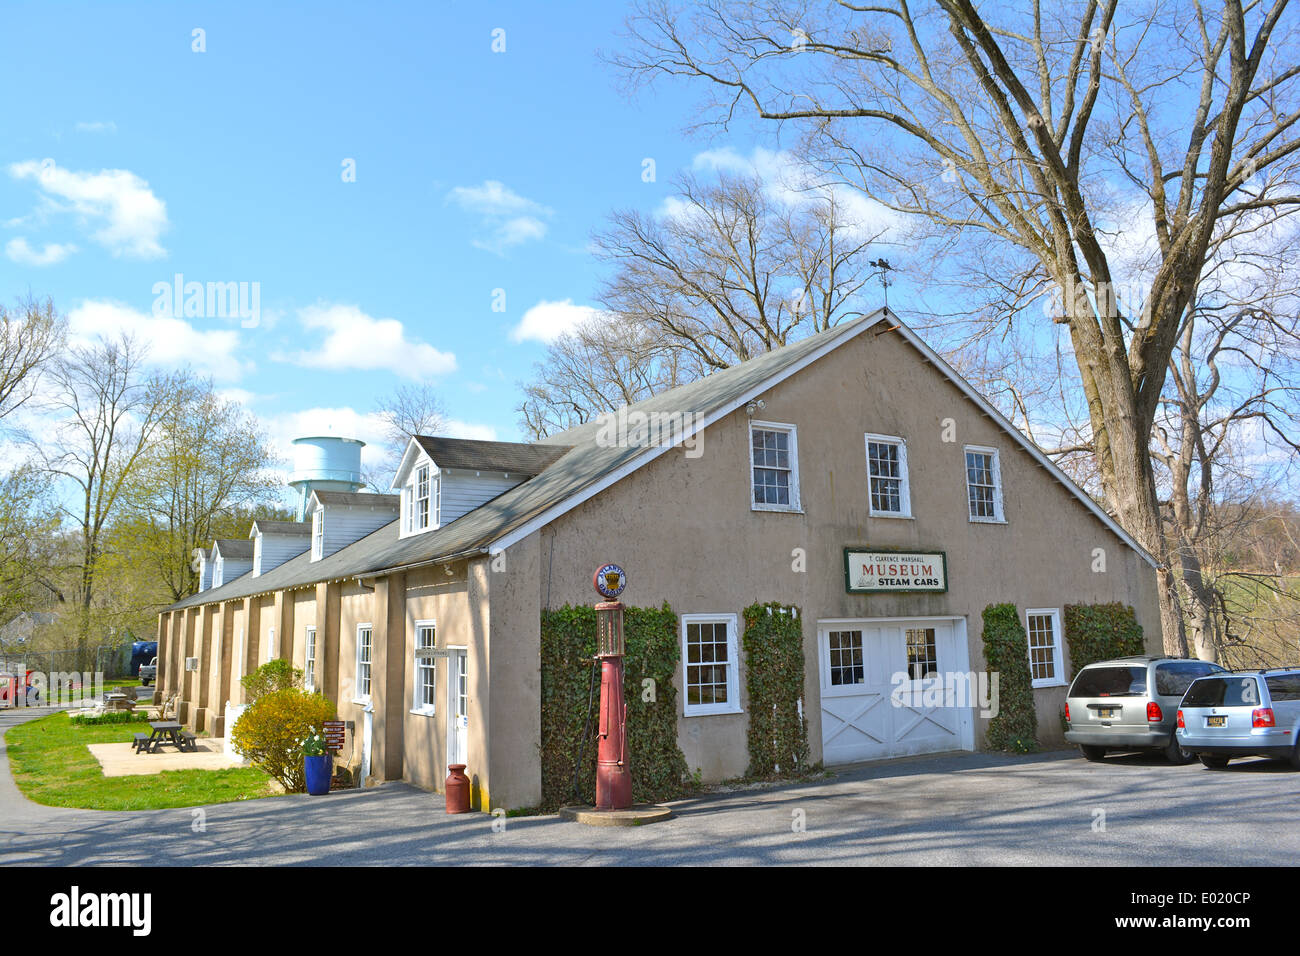 Building in Auburn Mills Historic District, added to the NRHP on January 22, 1980. Located west of Yorklyn, Delaware on Delaware - Stock Image